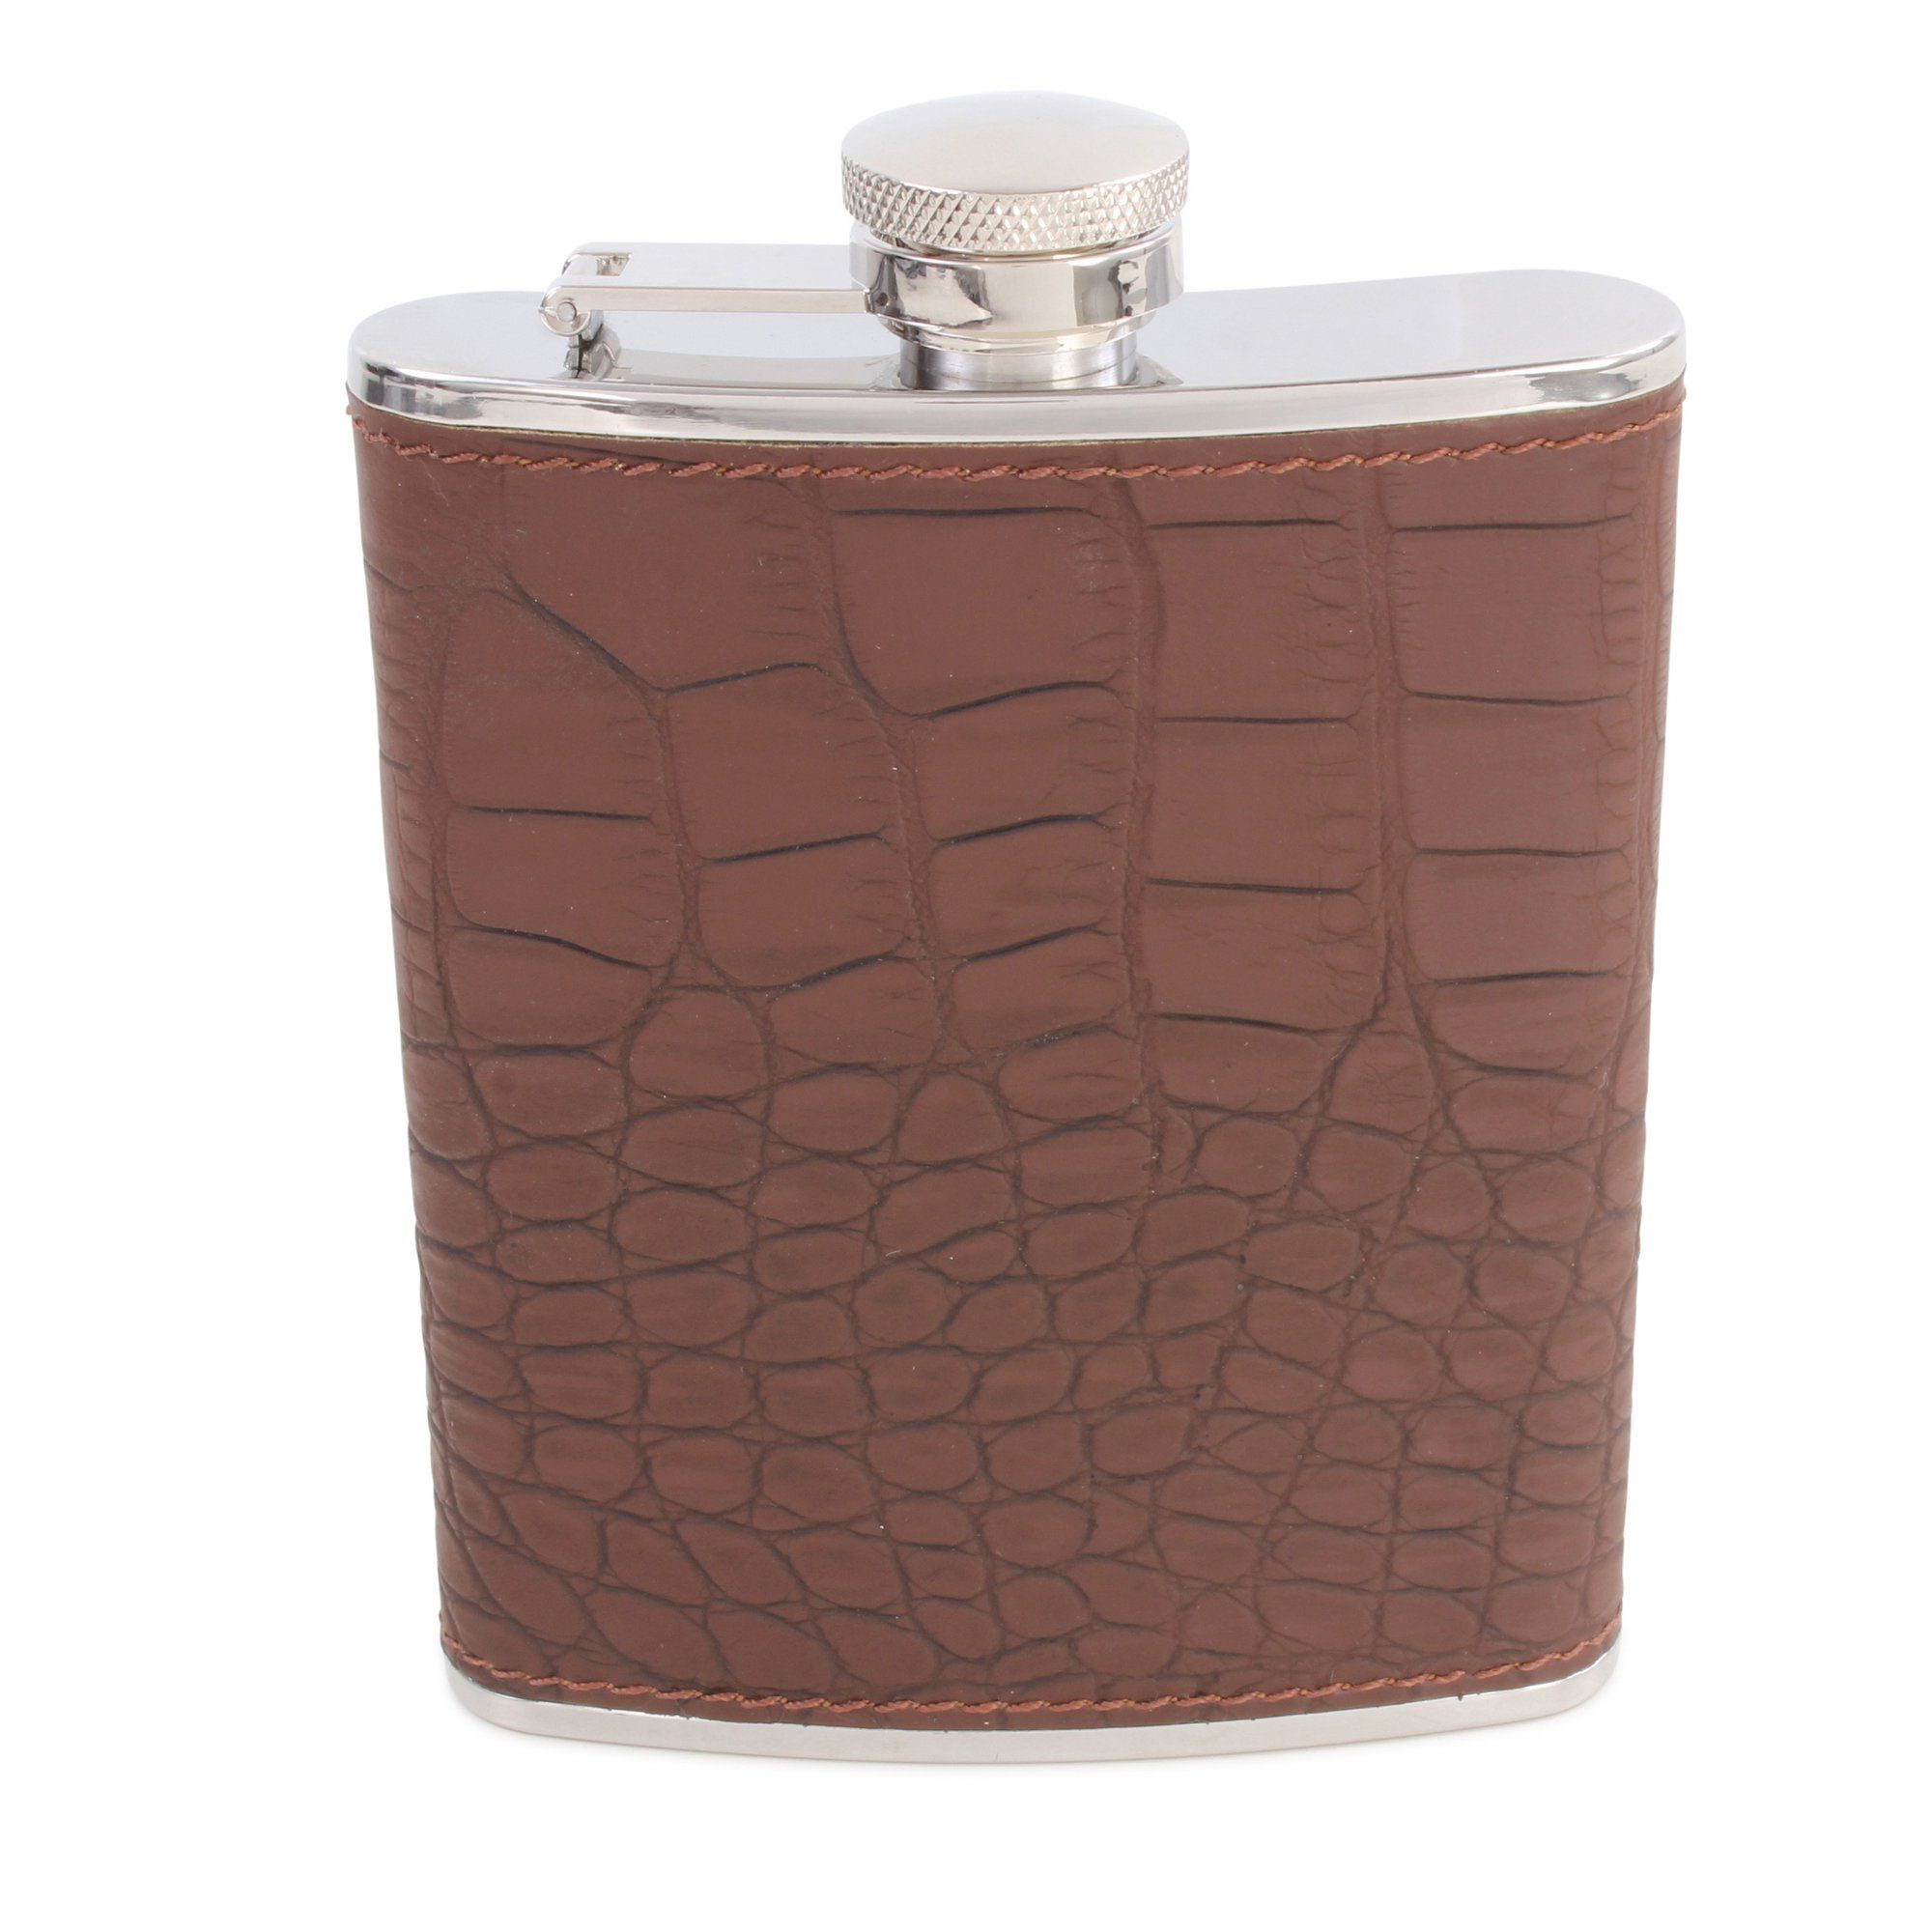 Brown Croc Leather Hip Flask